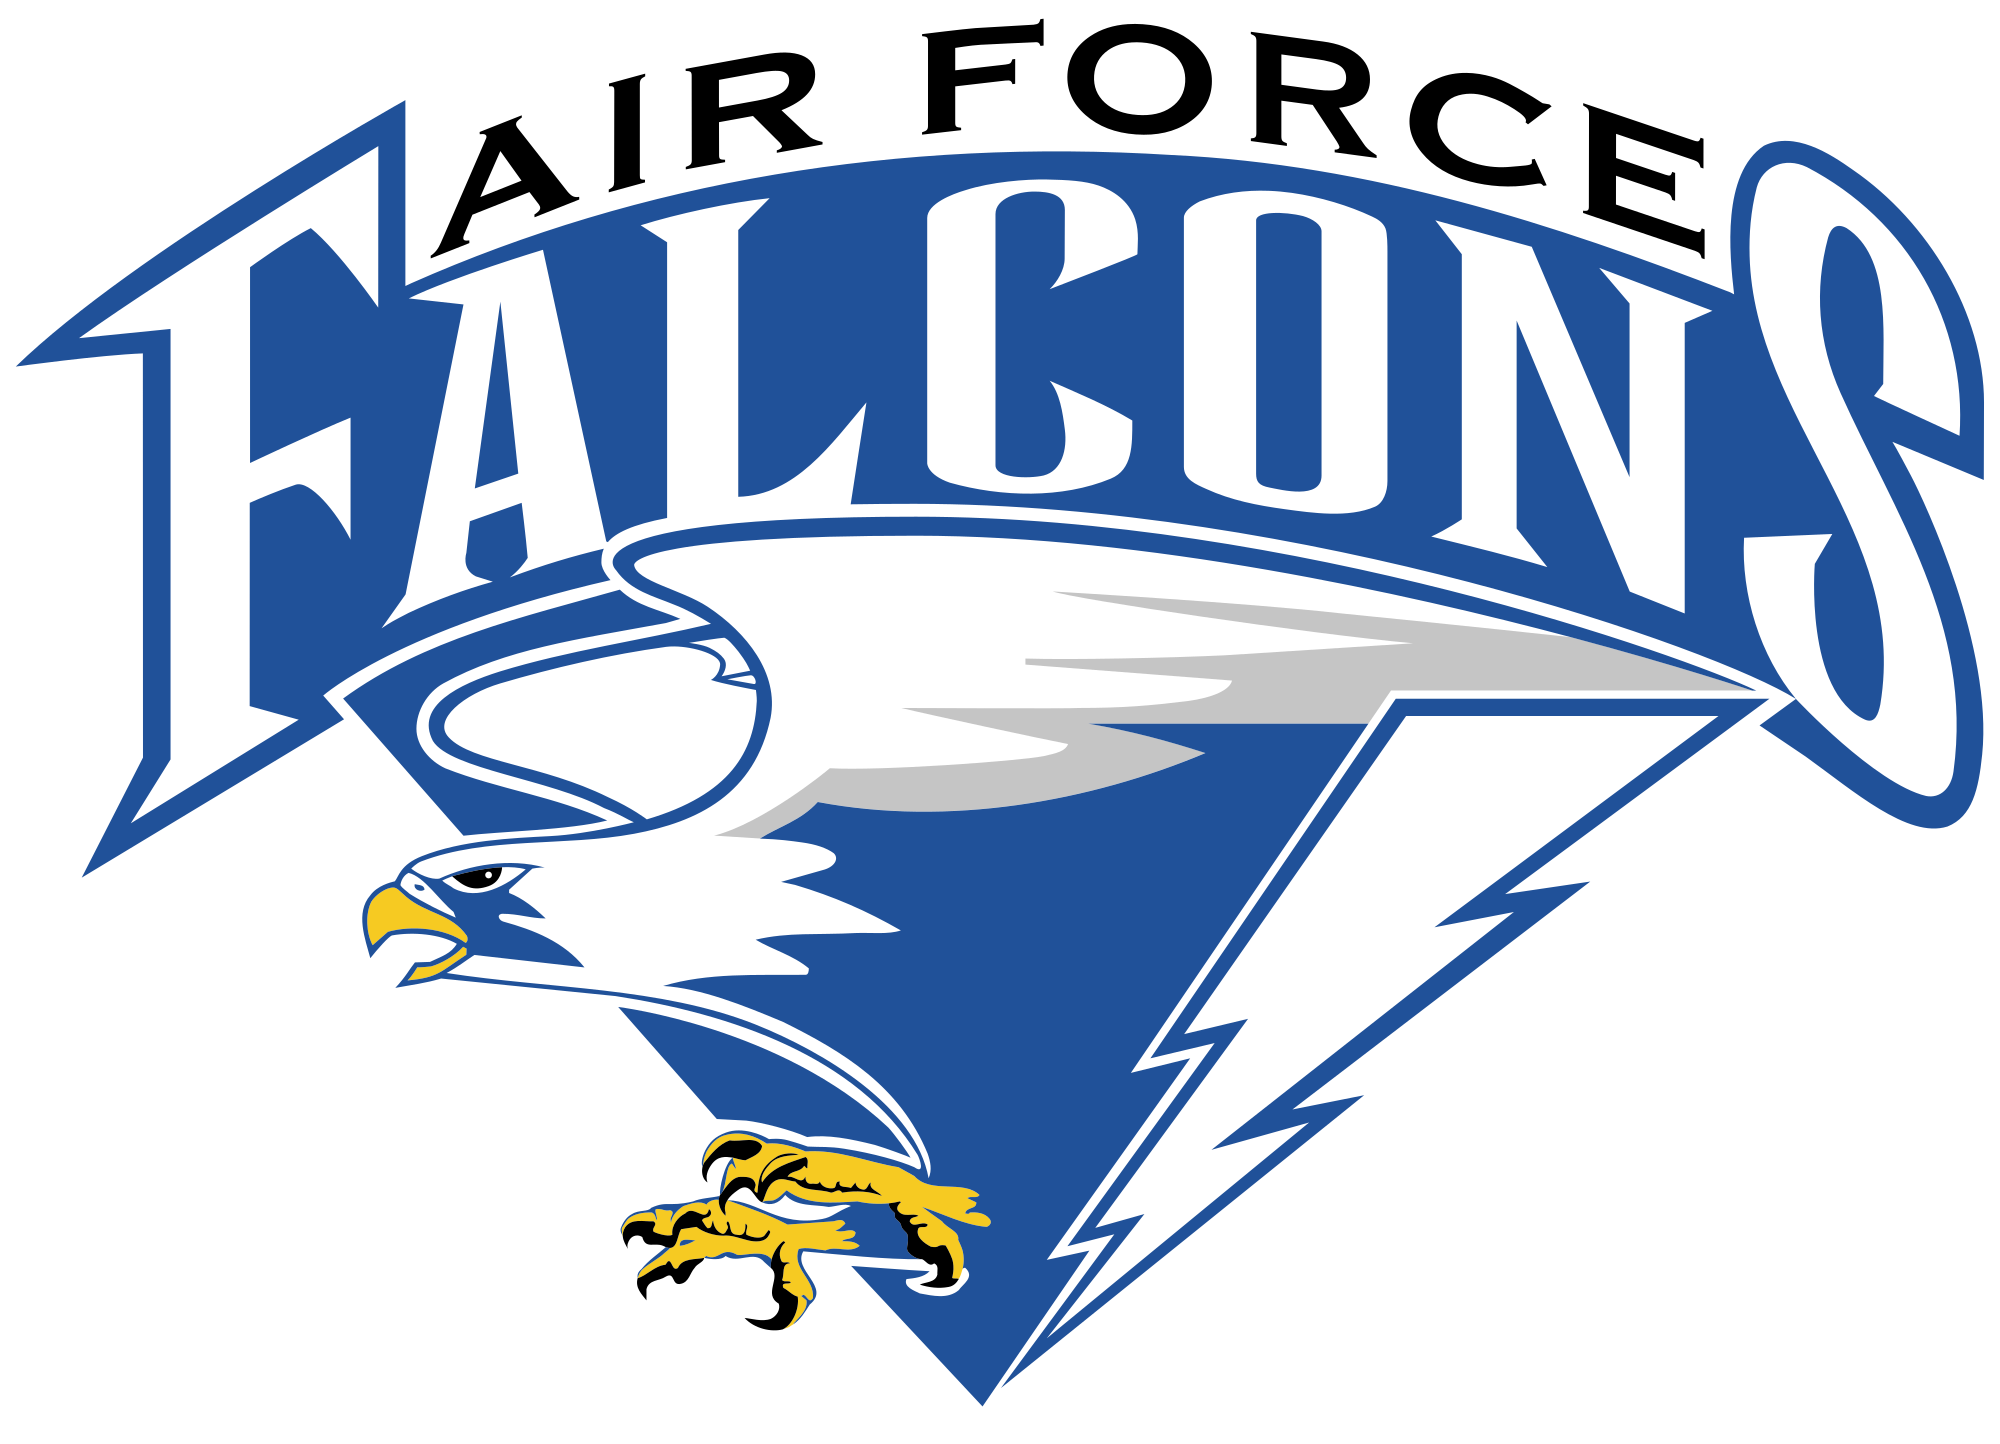 Falcons svg. File air force wikimedia download